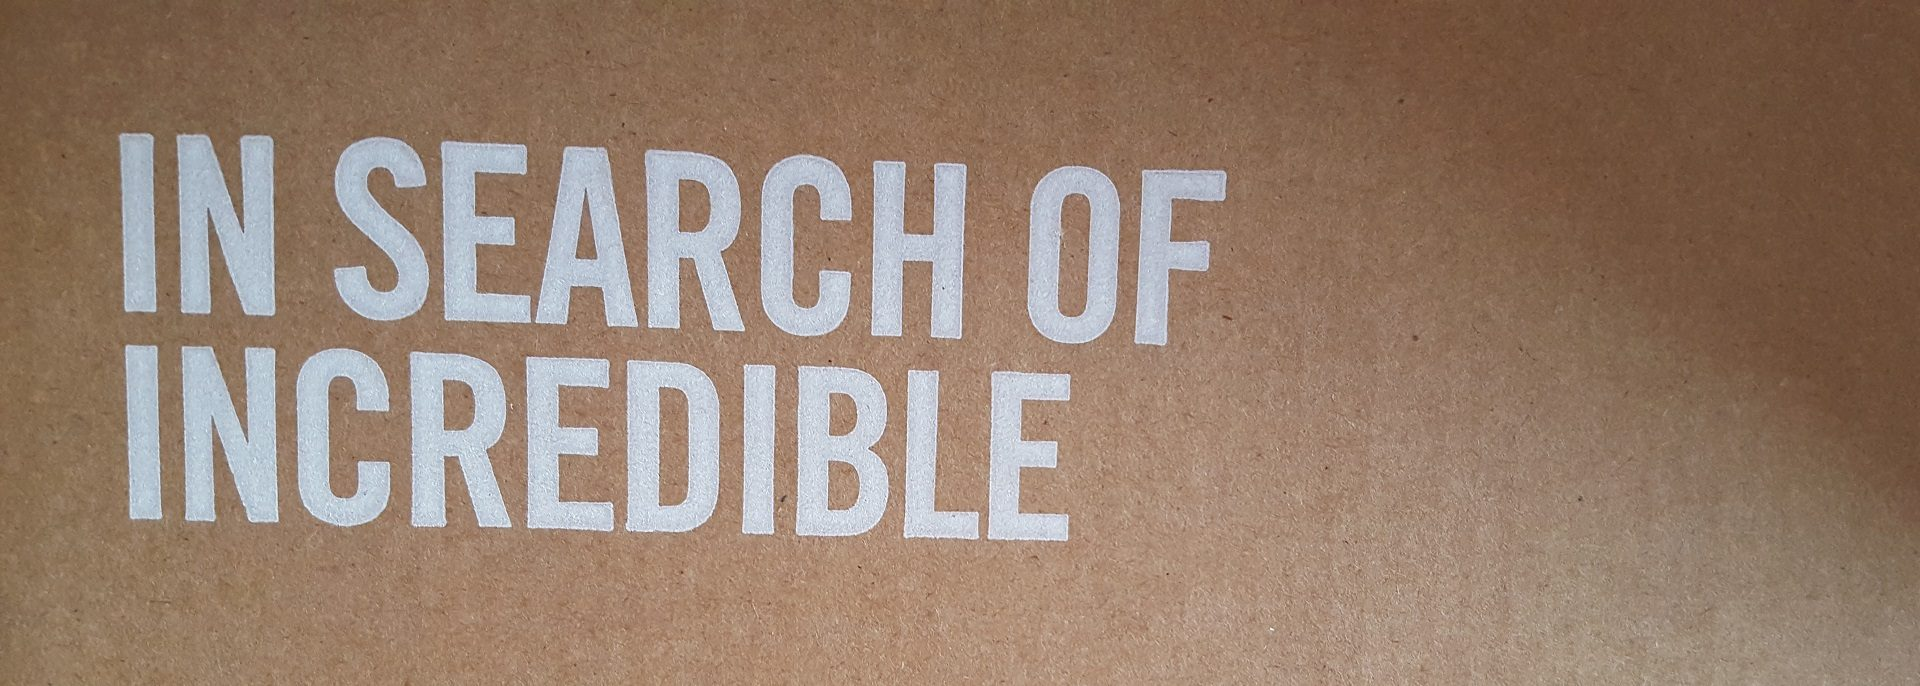 In Search of Incredible